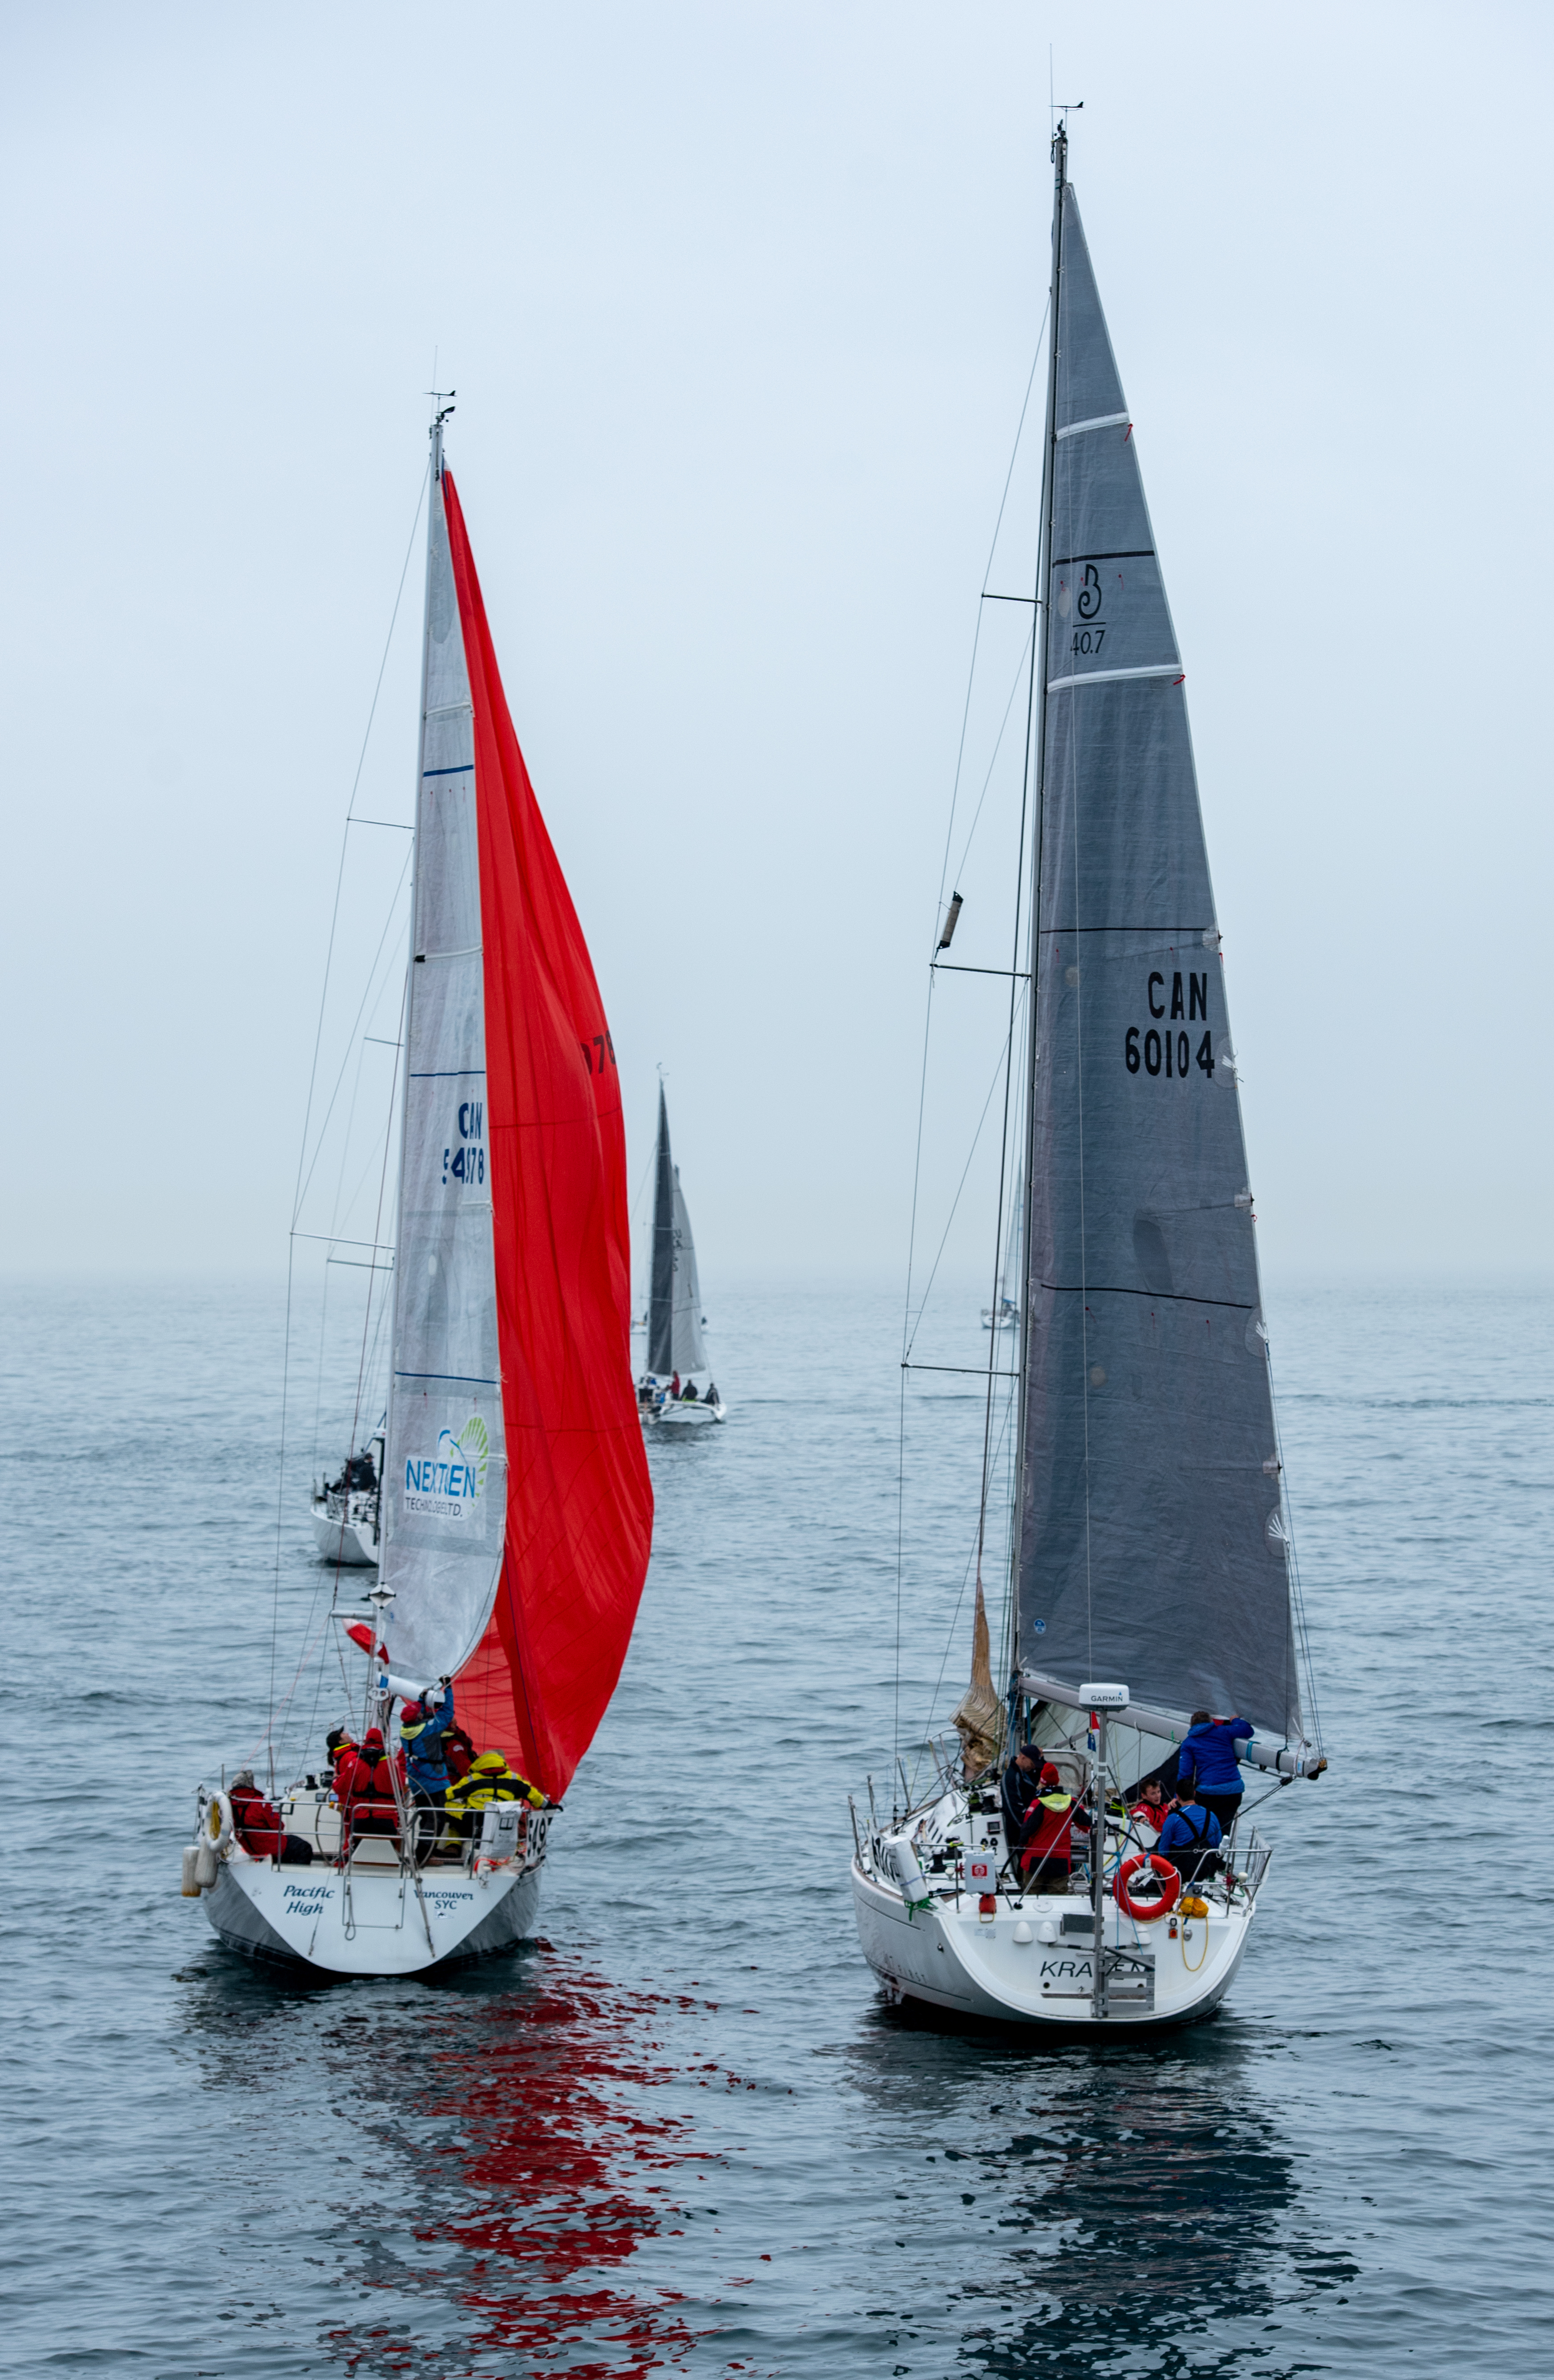 Swiftsure-25-May-2019-RMS-Media-by-Rob-Porter-69